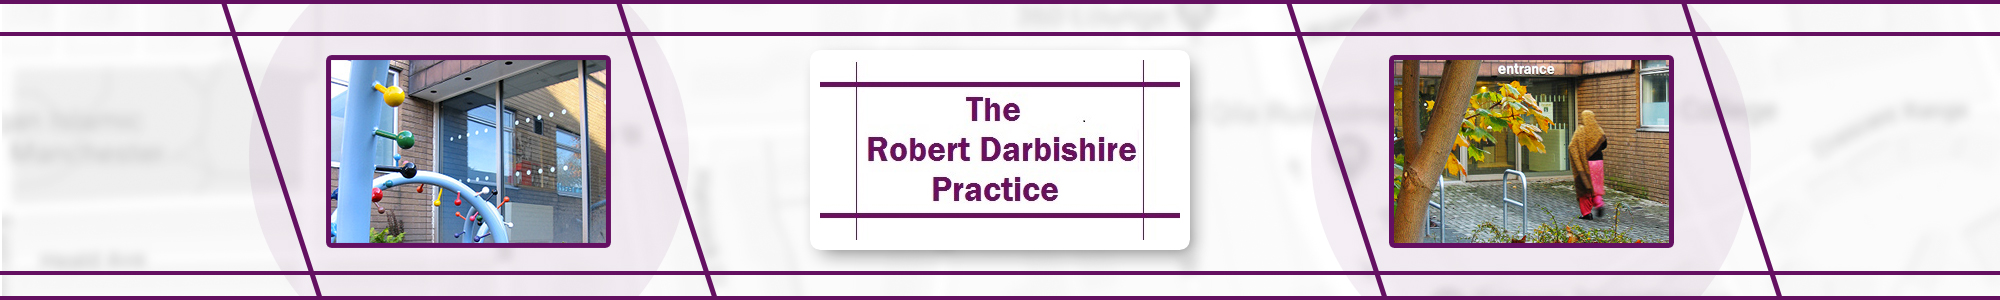 The Robert Darbishire Practice